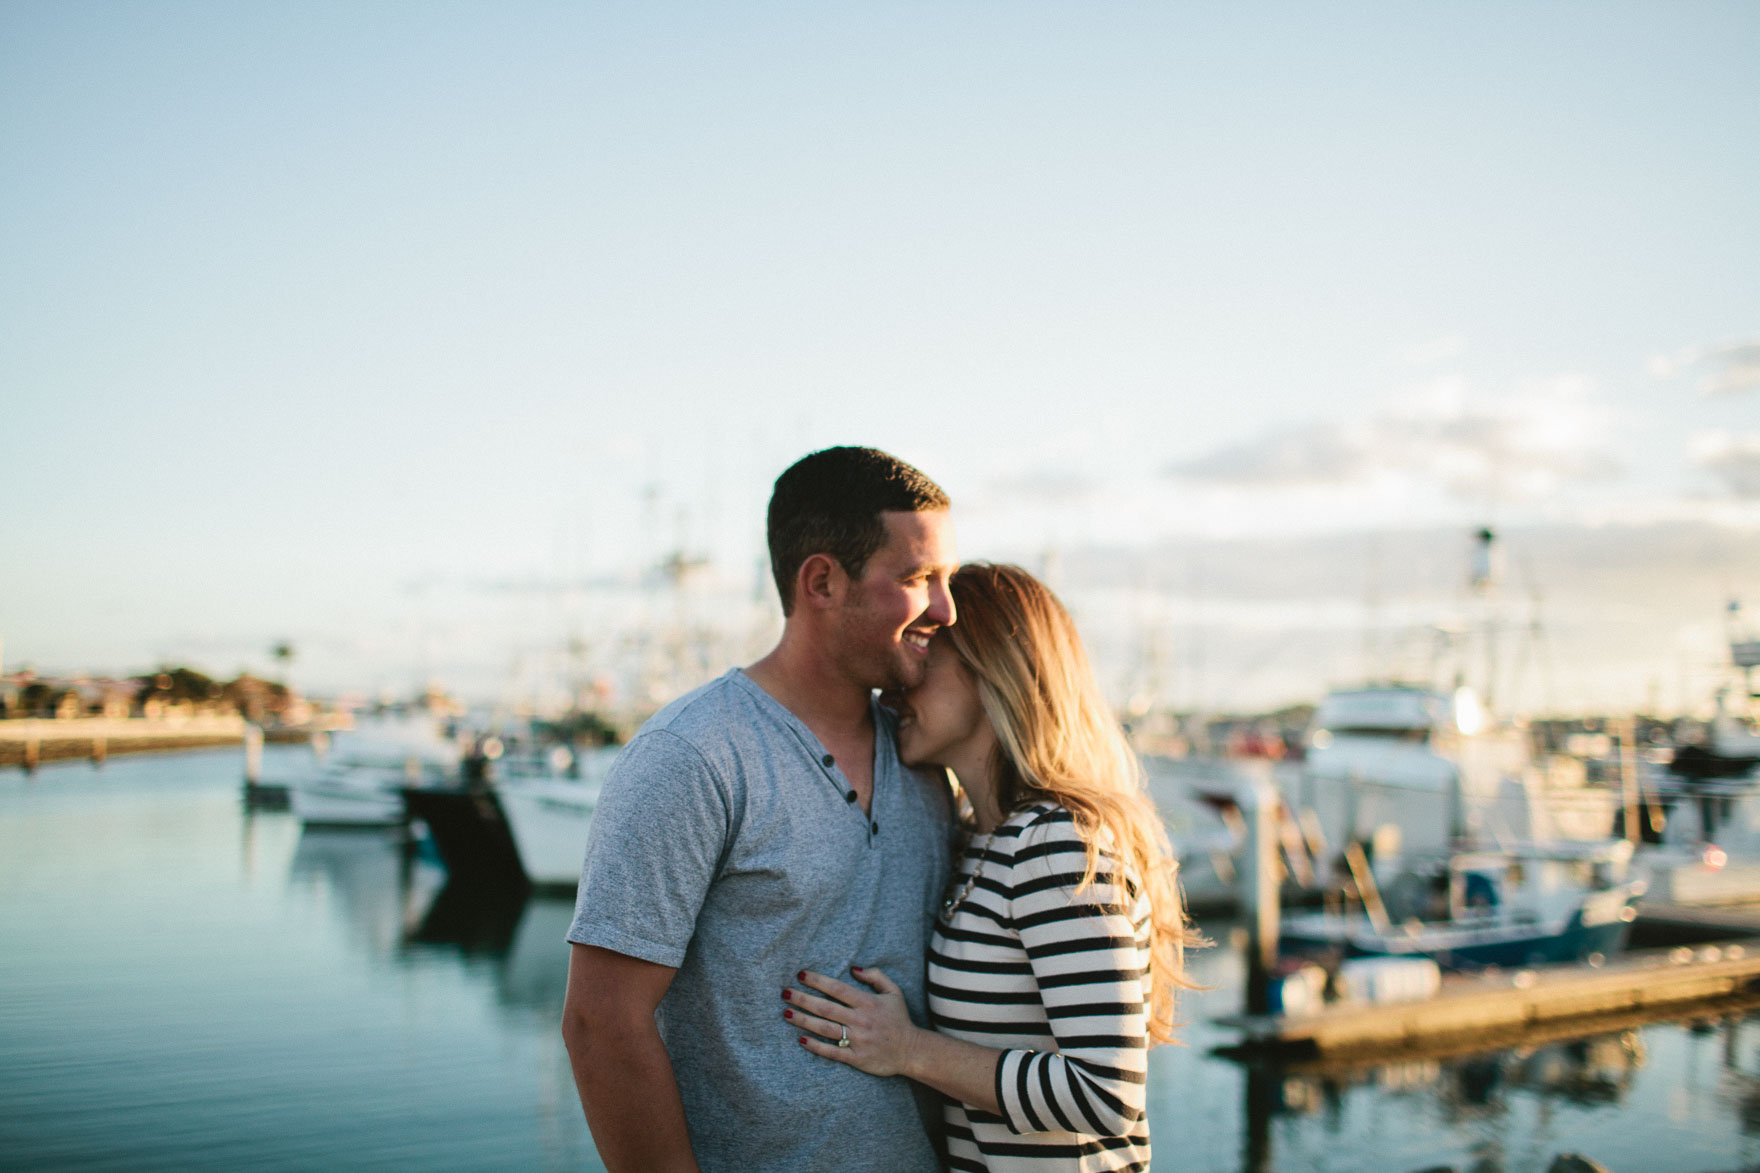 Seaside Love – Photo by Let's Frolic Together